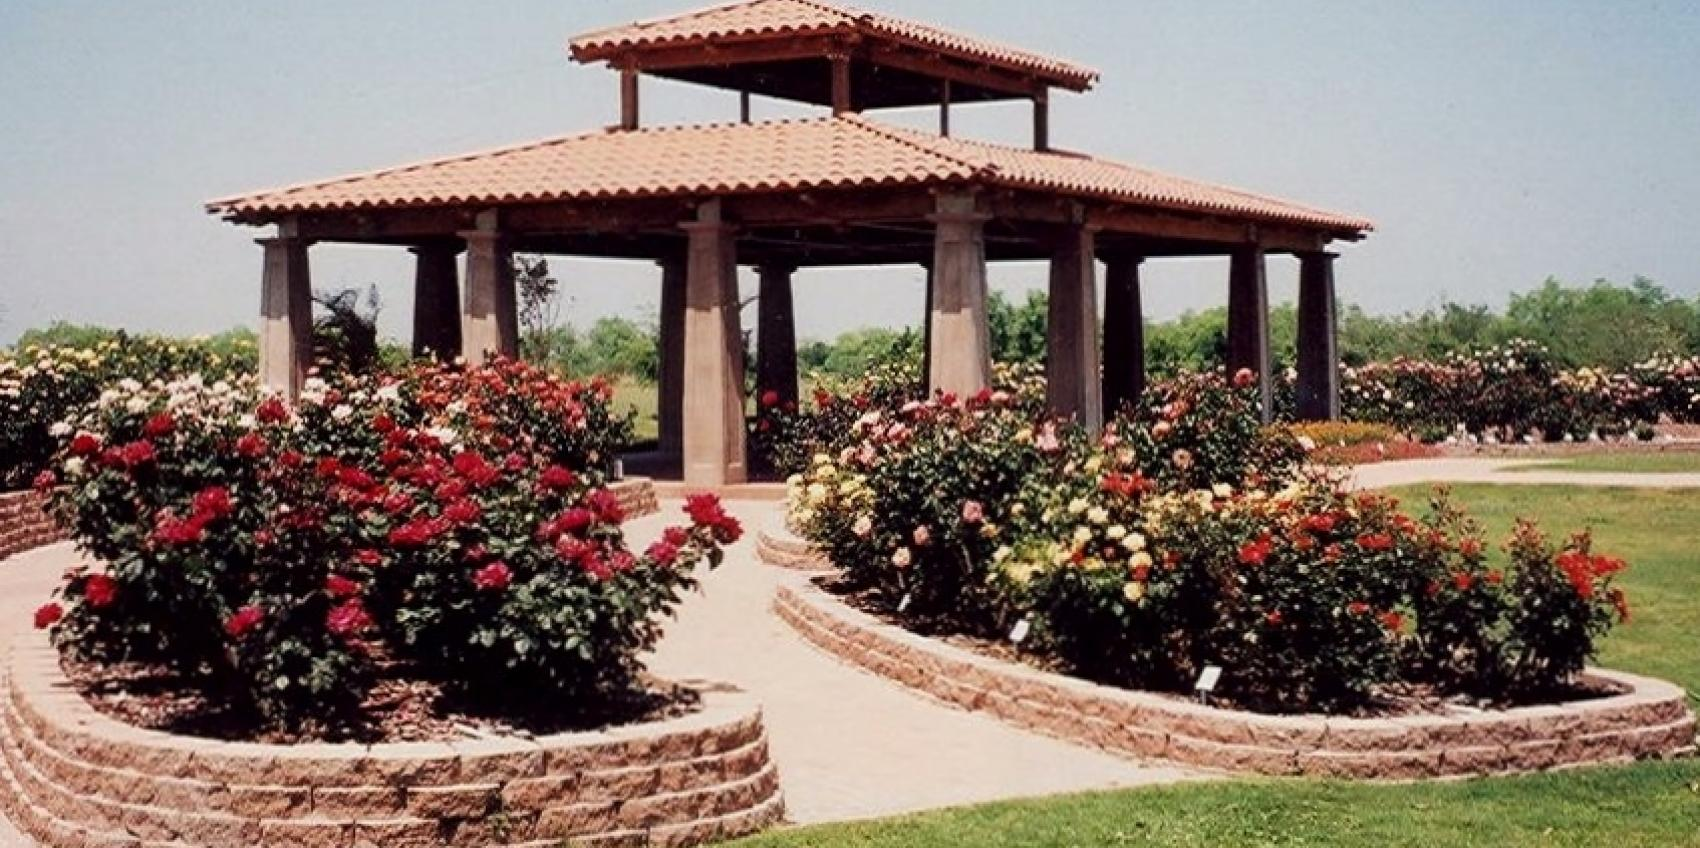 The South Texas Botanical Gardens U0026 Nature Center Is A 182 Acre Informal,  Rather Outside The Box Destination On Oso Creek Showcasing Its U0027Flora,  Fauna, ...